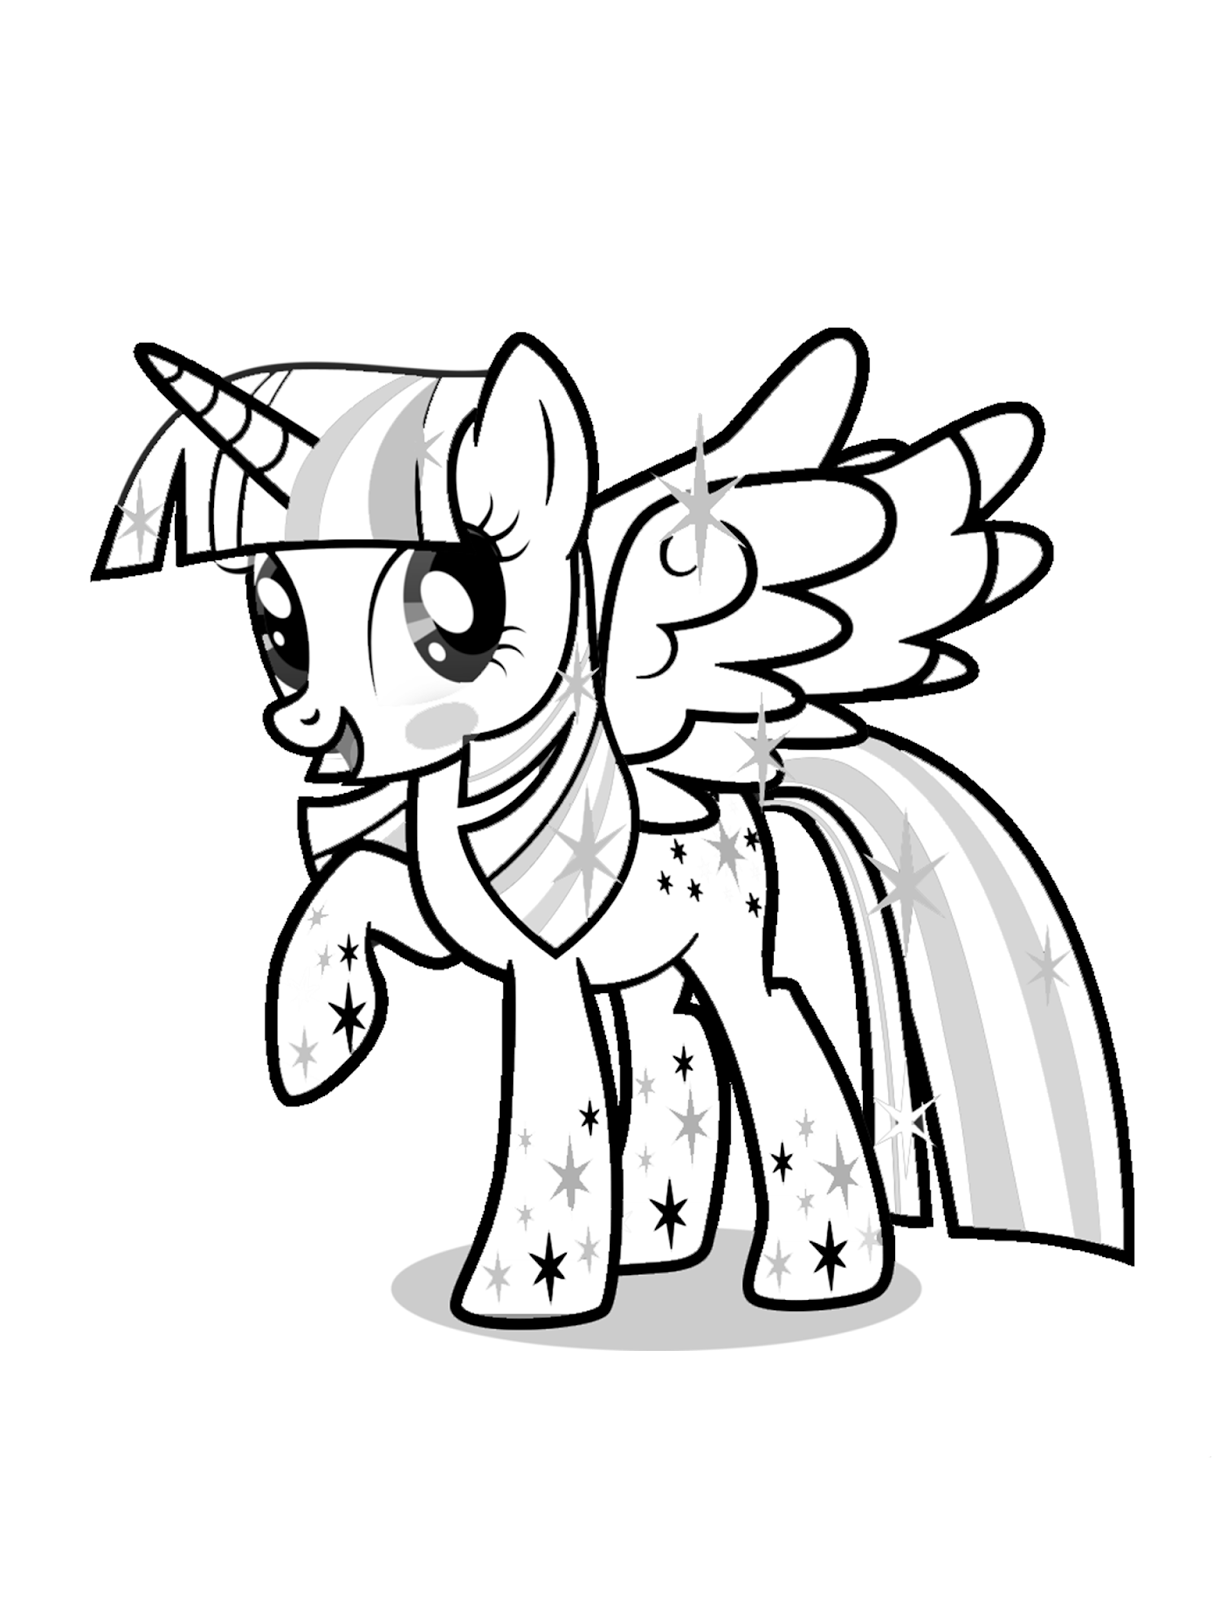 twilight sparkle colouring pages coloring fun twilight sparkle twilight sparkle pages colouring